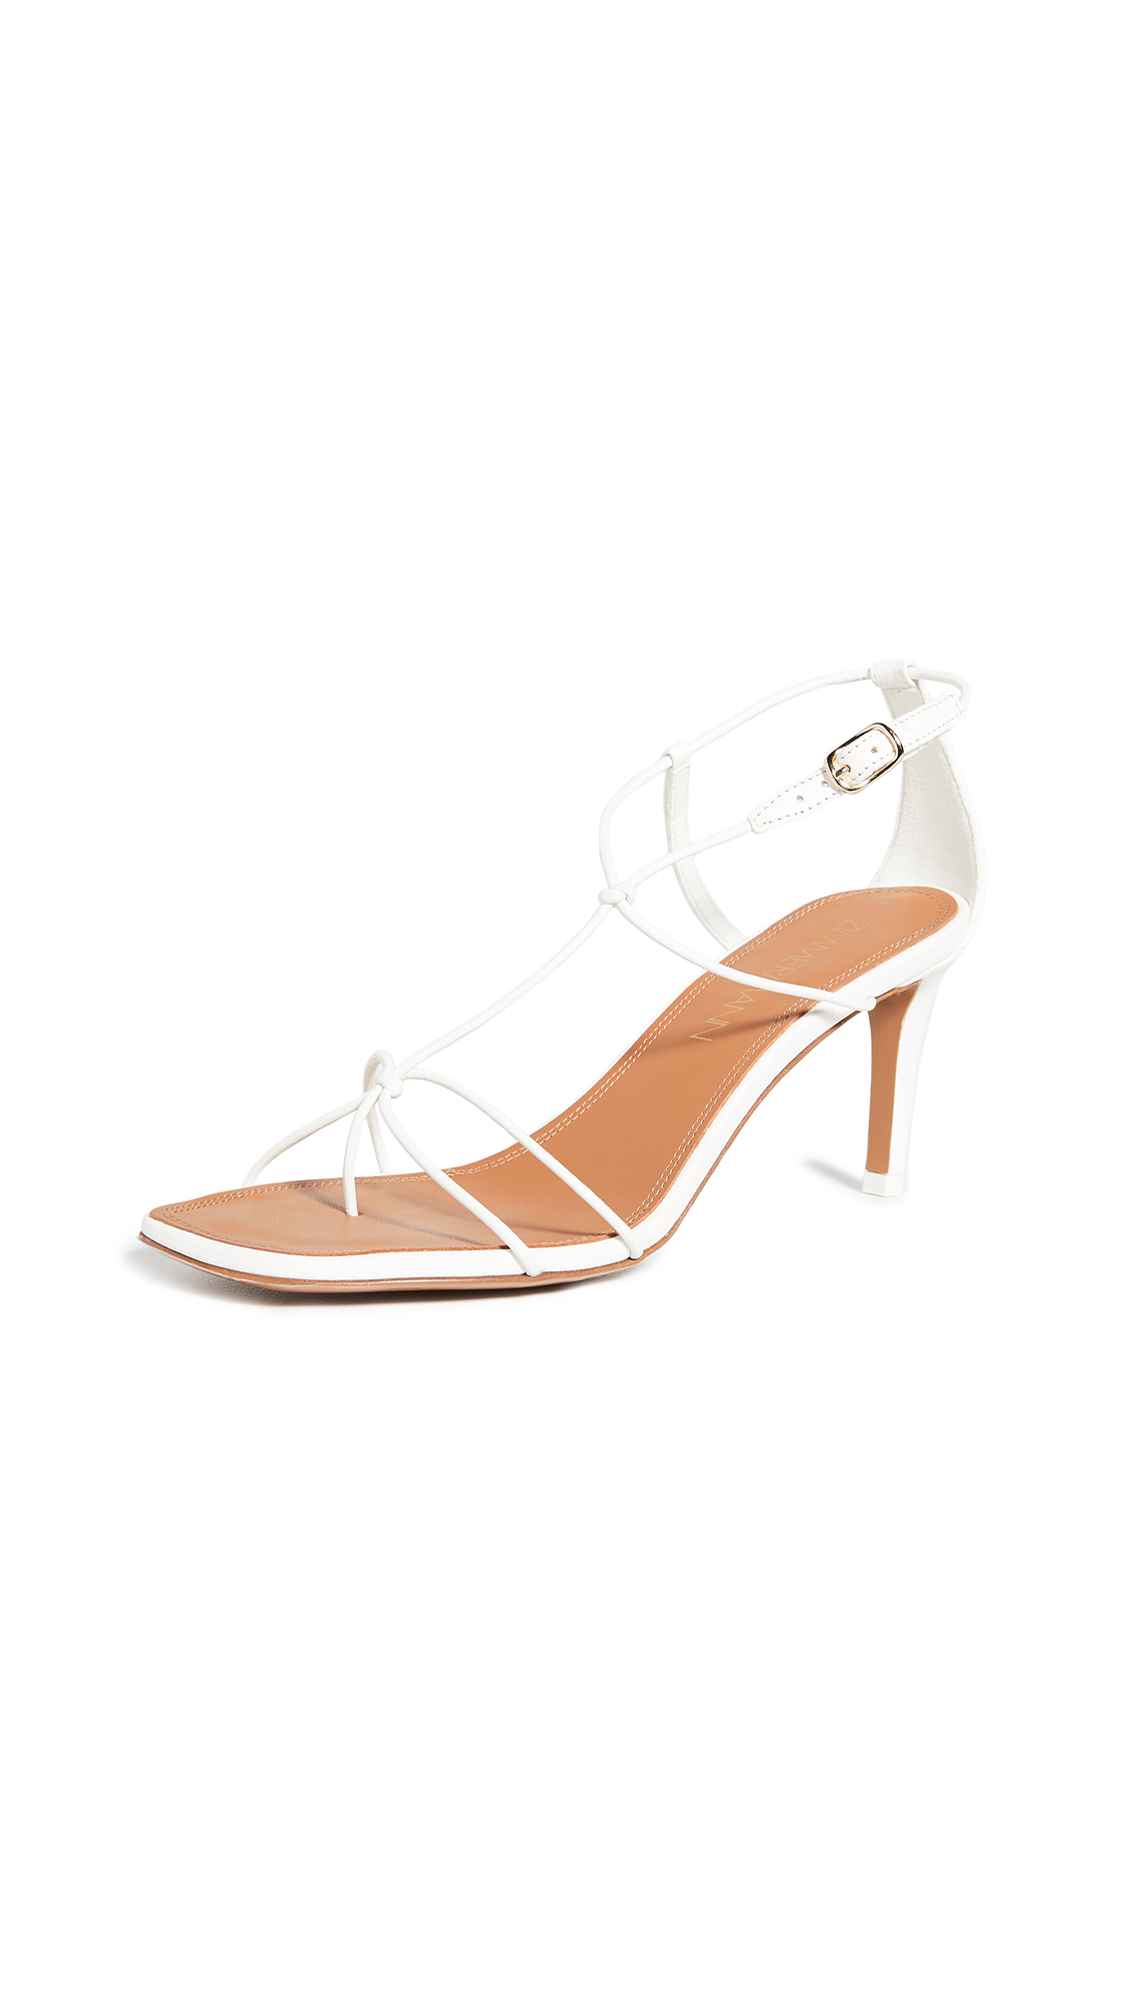 Zimmermann Strappy Heeled Sandals – 50% Off Sale